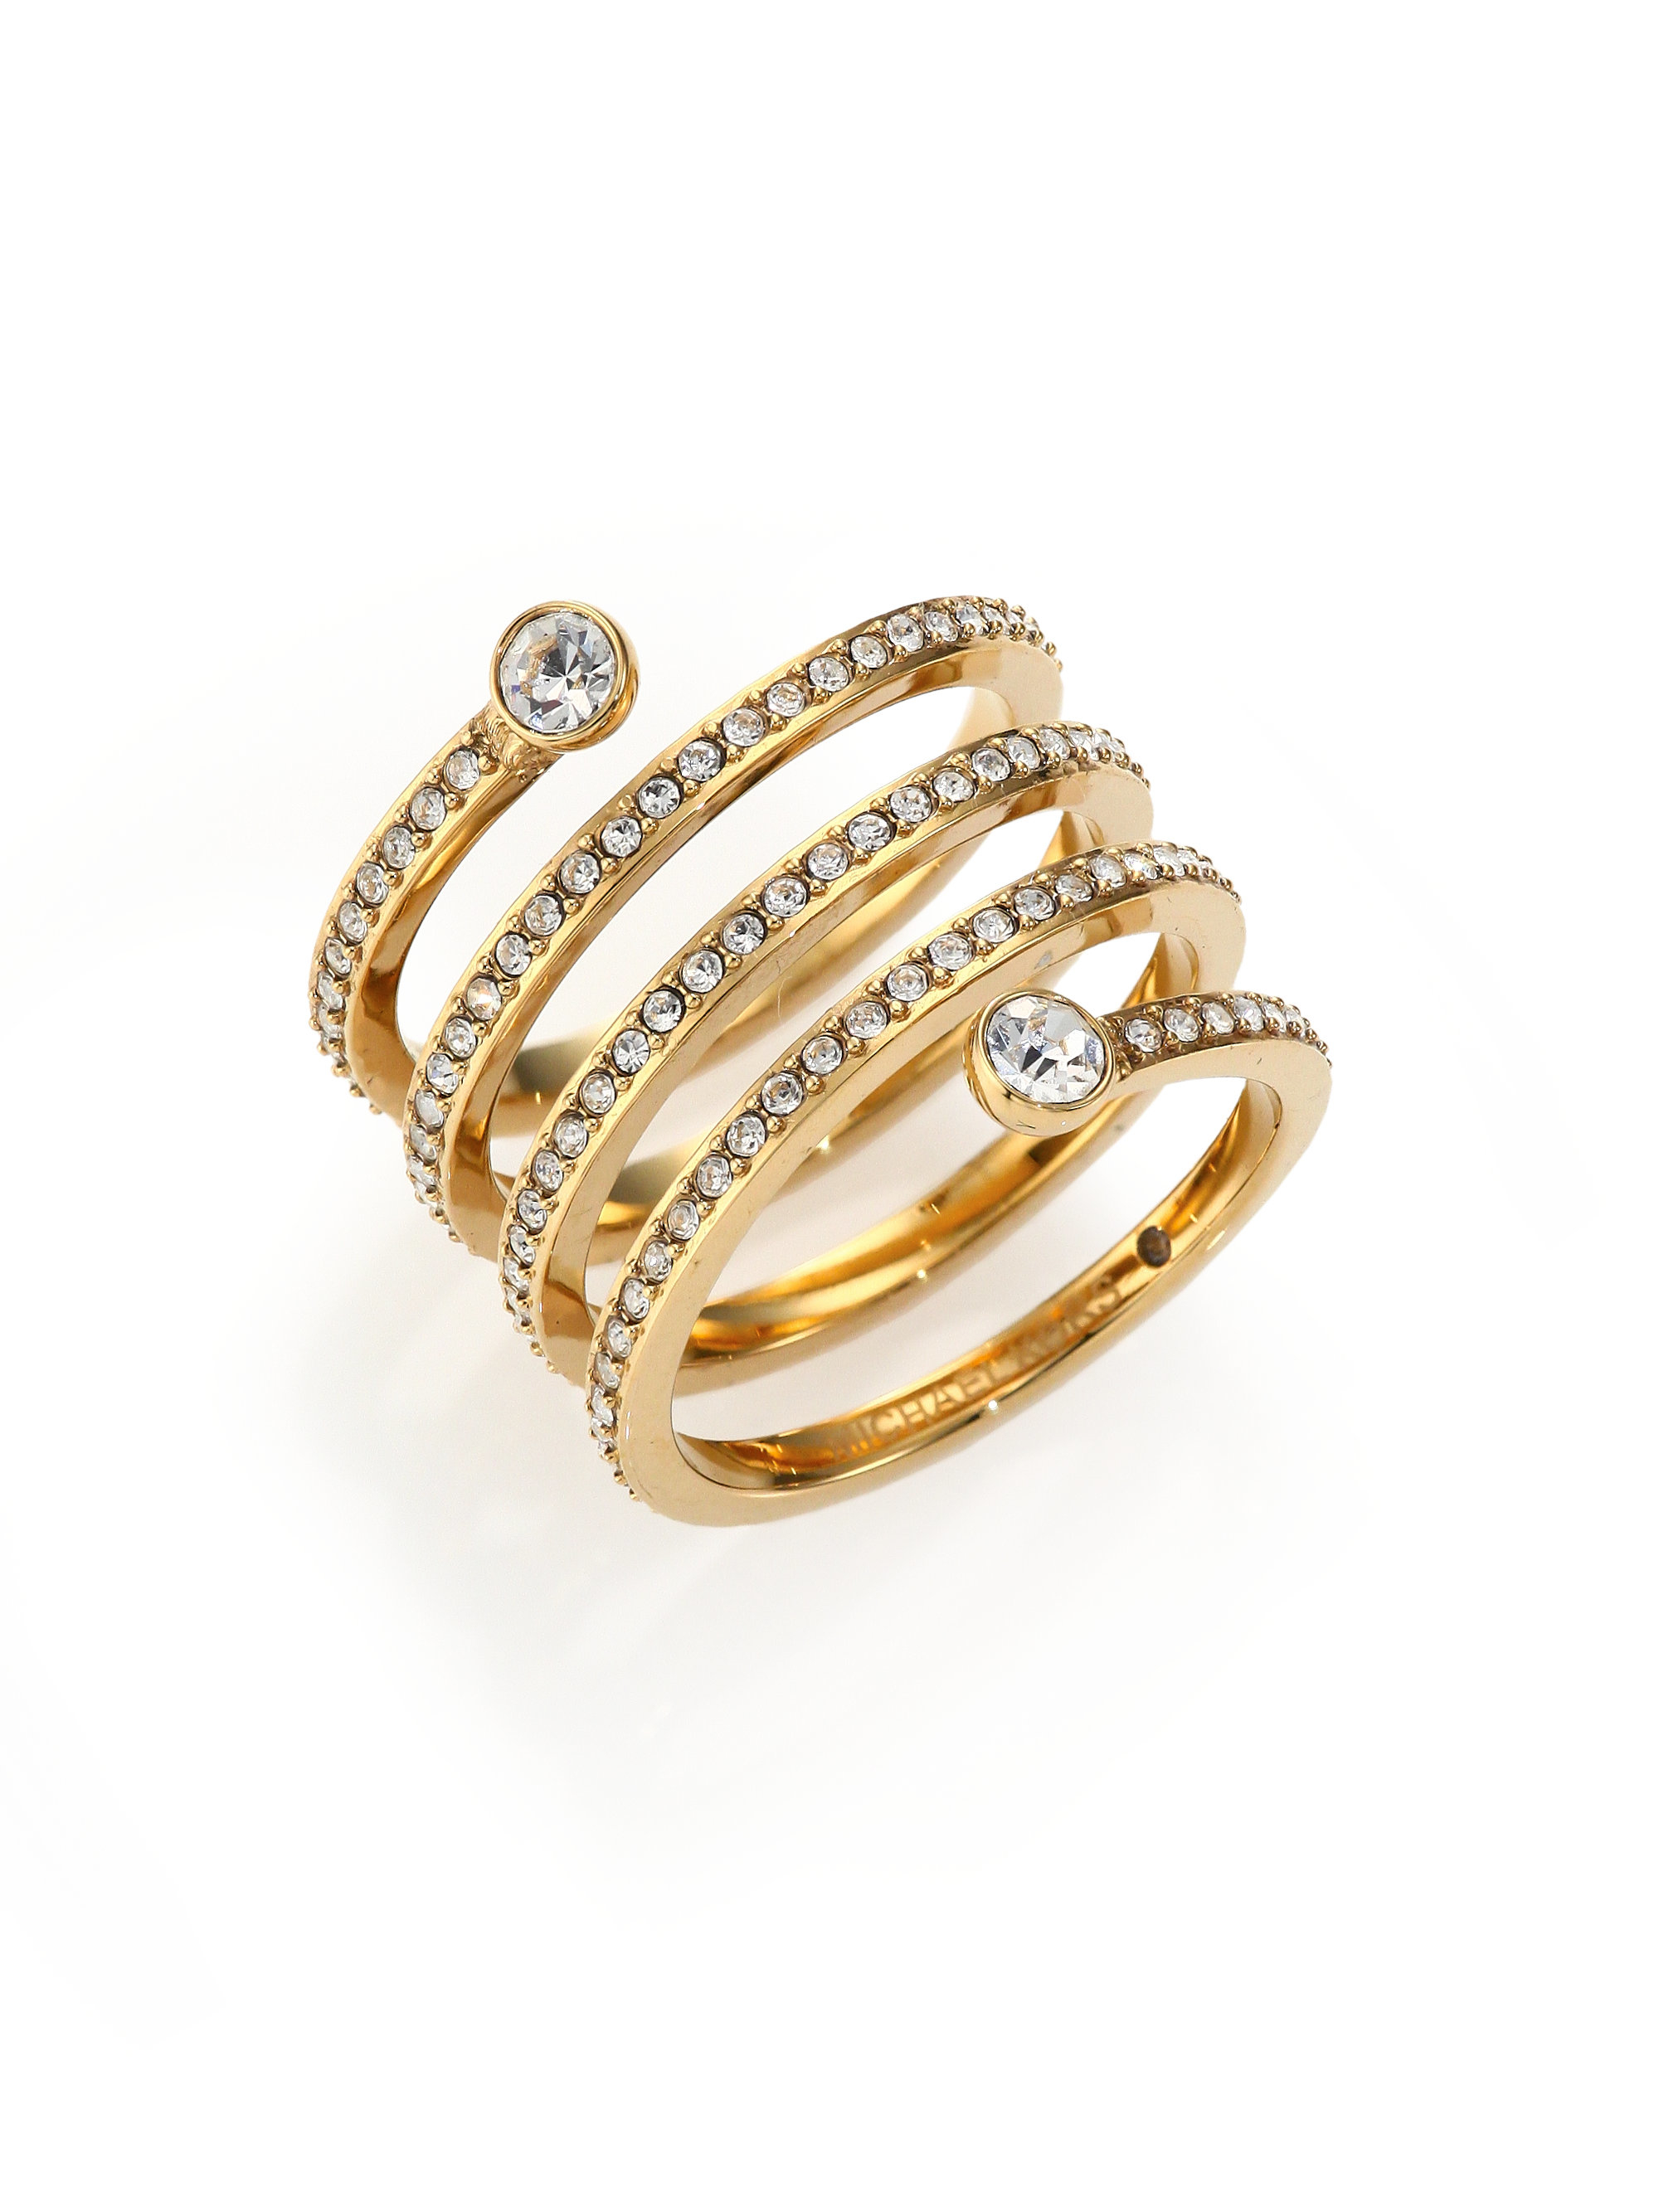 86625441fce4 Lyst - Michael Kors Park Avenue Glam Pave Spiral Ring goldtone in ...